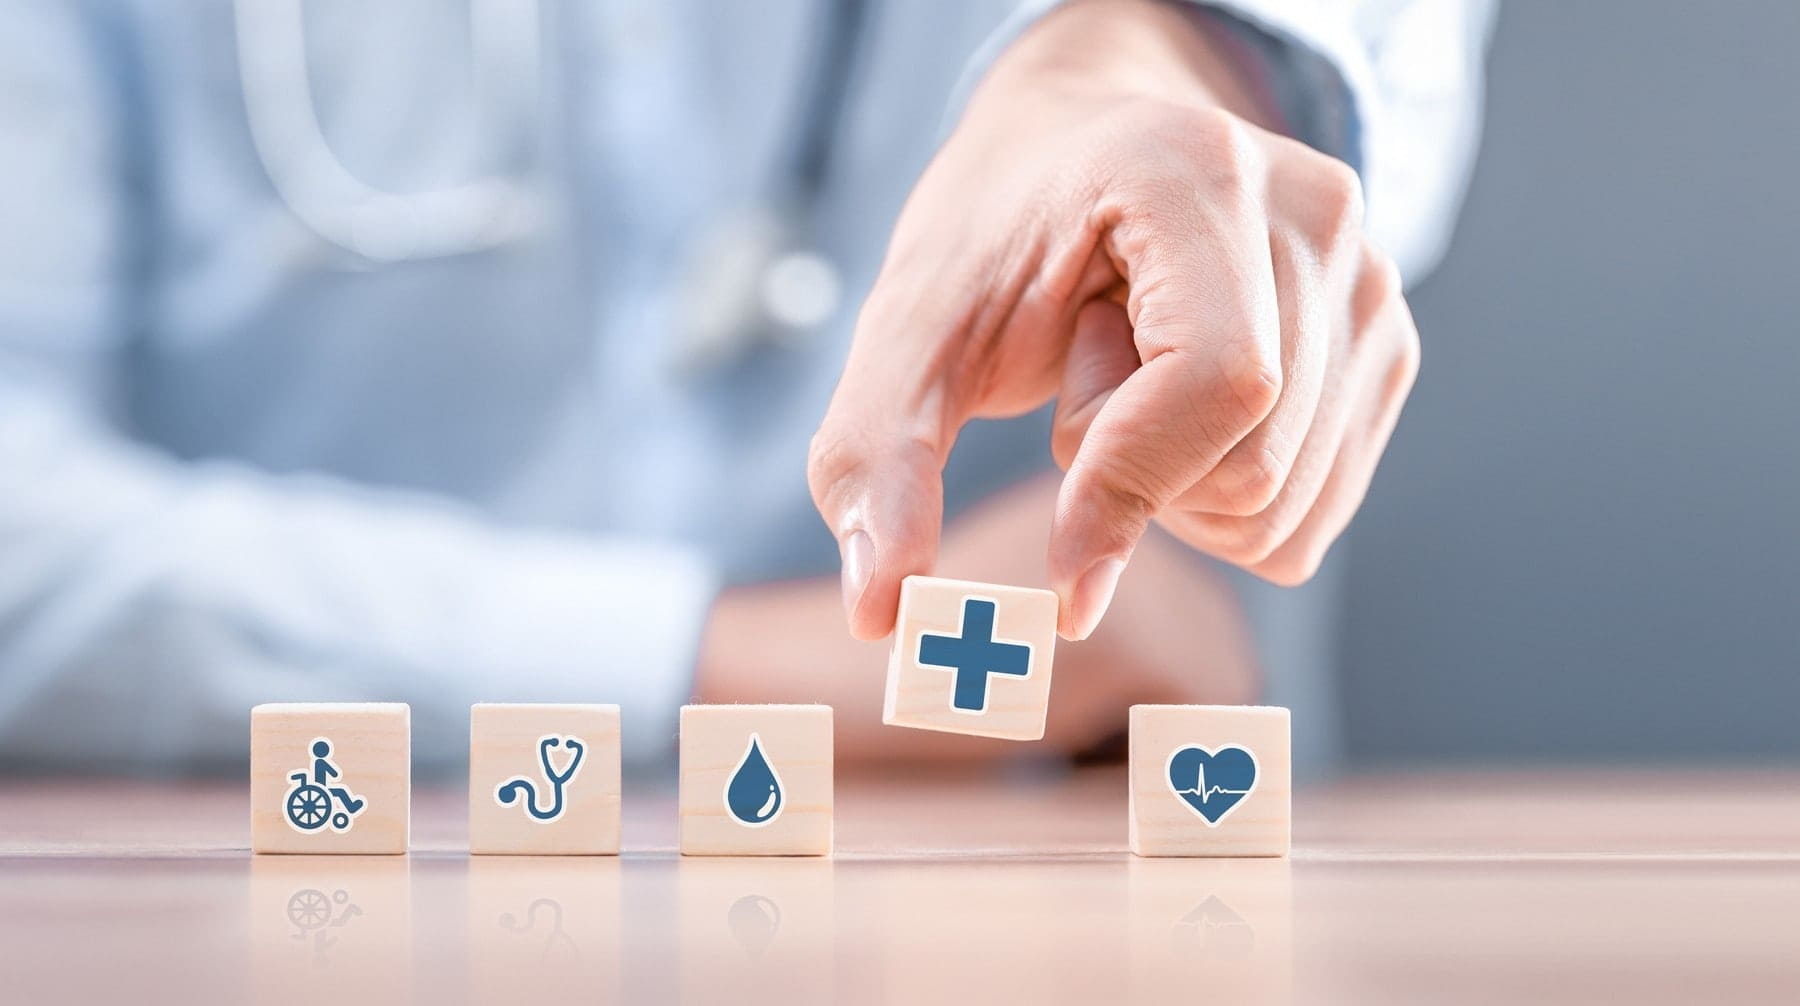 Hand arranging wood block with healthcare medical icon